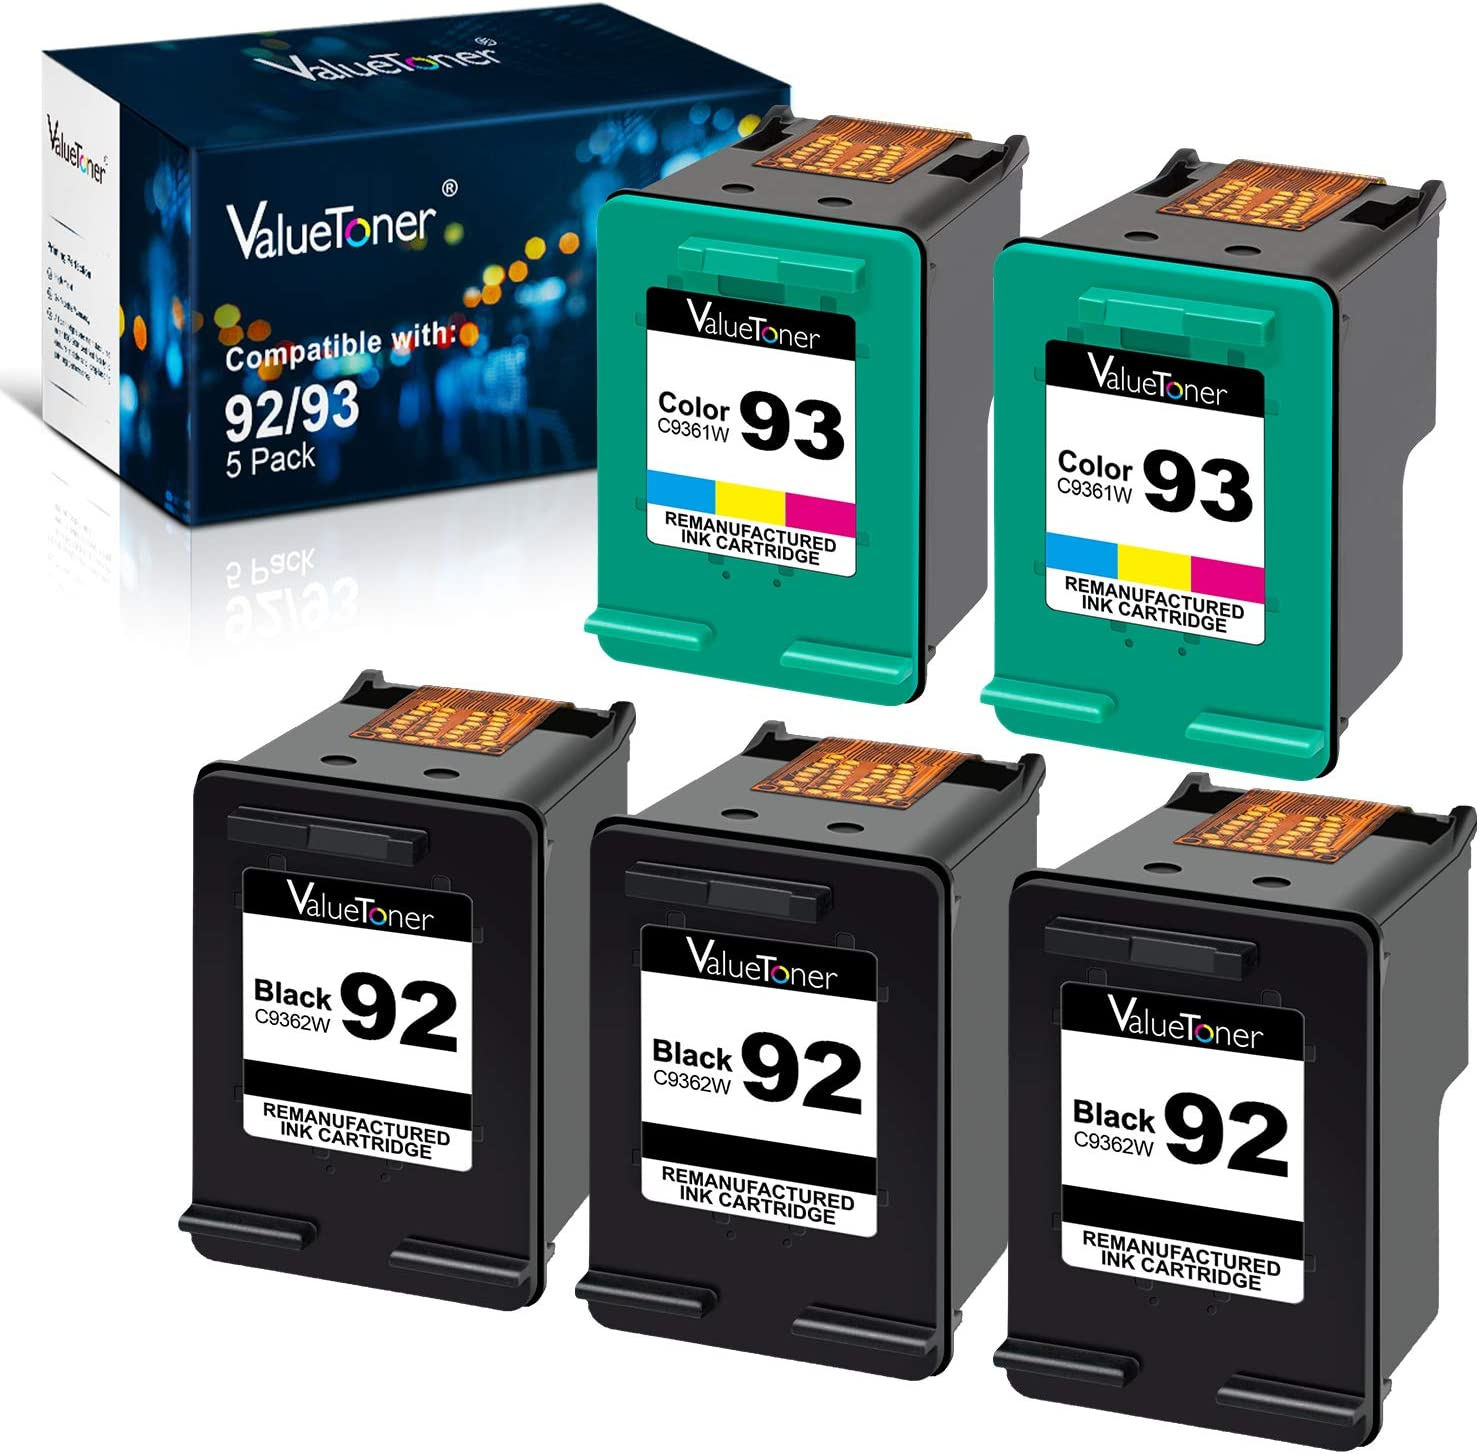 Valuetoner Remanufactured Ink Cartridge Replacement for HP 92 93 C9362WN C9361WN for Deskjet 5420 5420v 5440 5440v 5440xi 5442 5443 Photosmart 7850 C3100 C3110 (3 Black, 2 Tri-Color, 5 Pack)